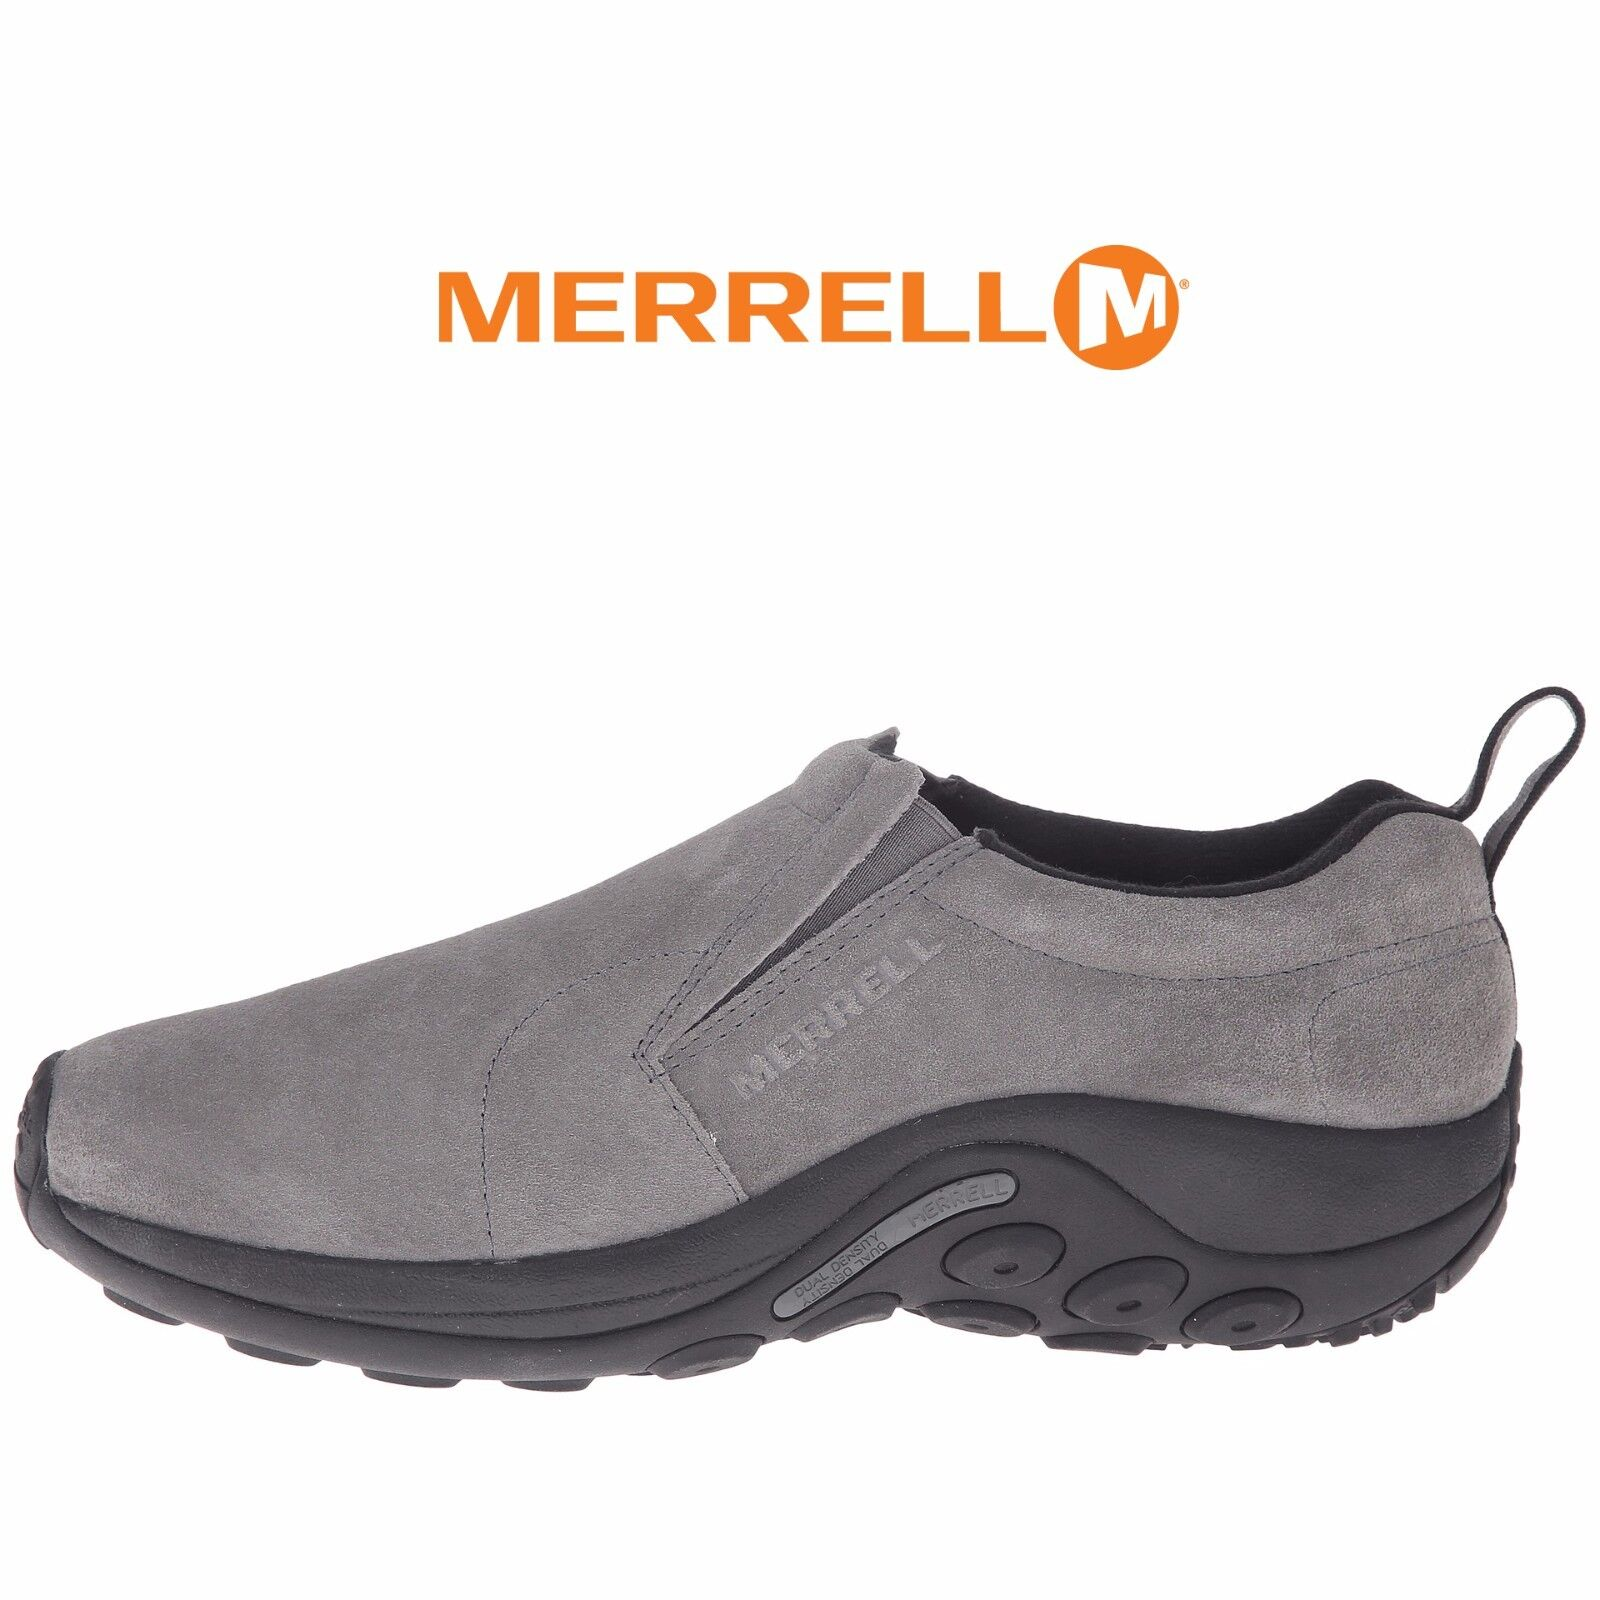 merrell jungle moc wide canada outlet